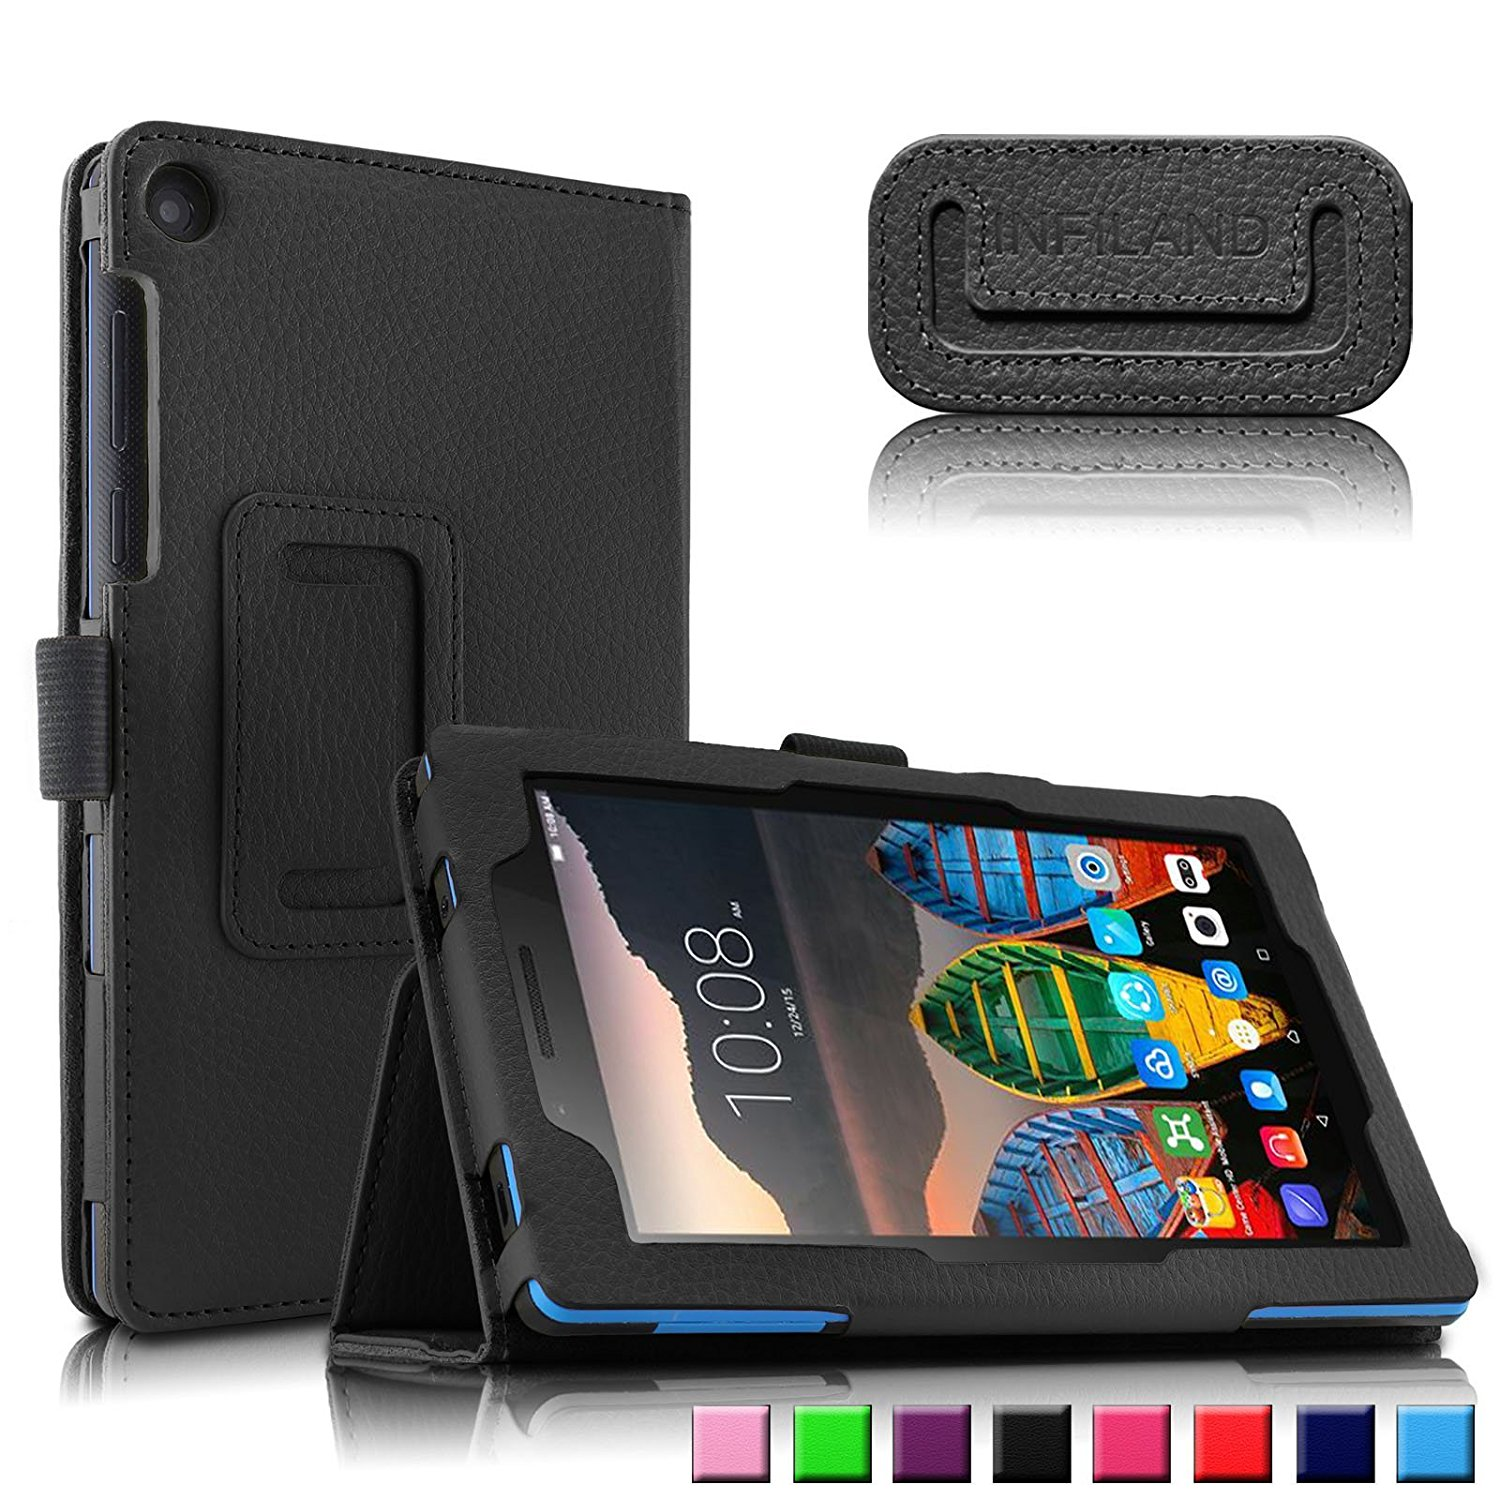 online store ab08f 3c18d US $4.96 |Cover for Lenovo Tab3 7 Essential 710F 7.0 Tablet Case Flip PU  Leather Case Protective Shell Case for Tab3 710i Funda Case-in Tablets & ...